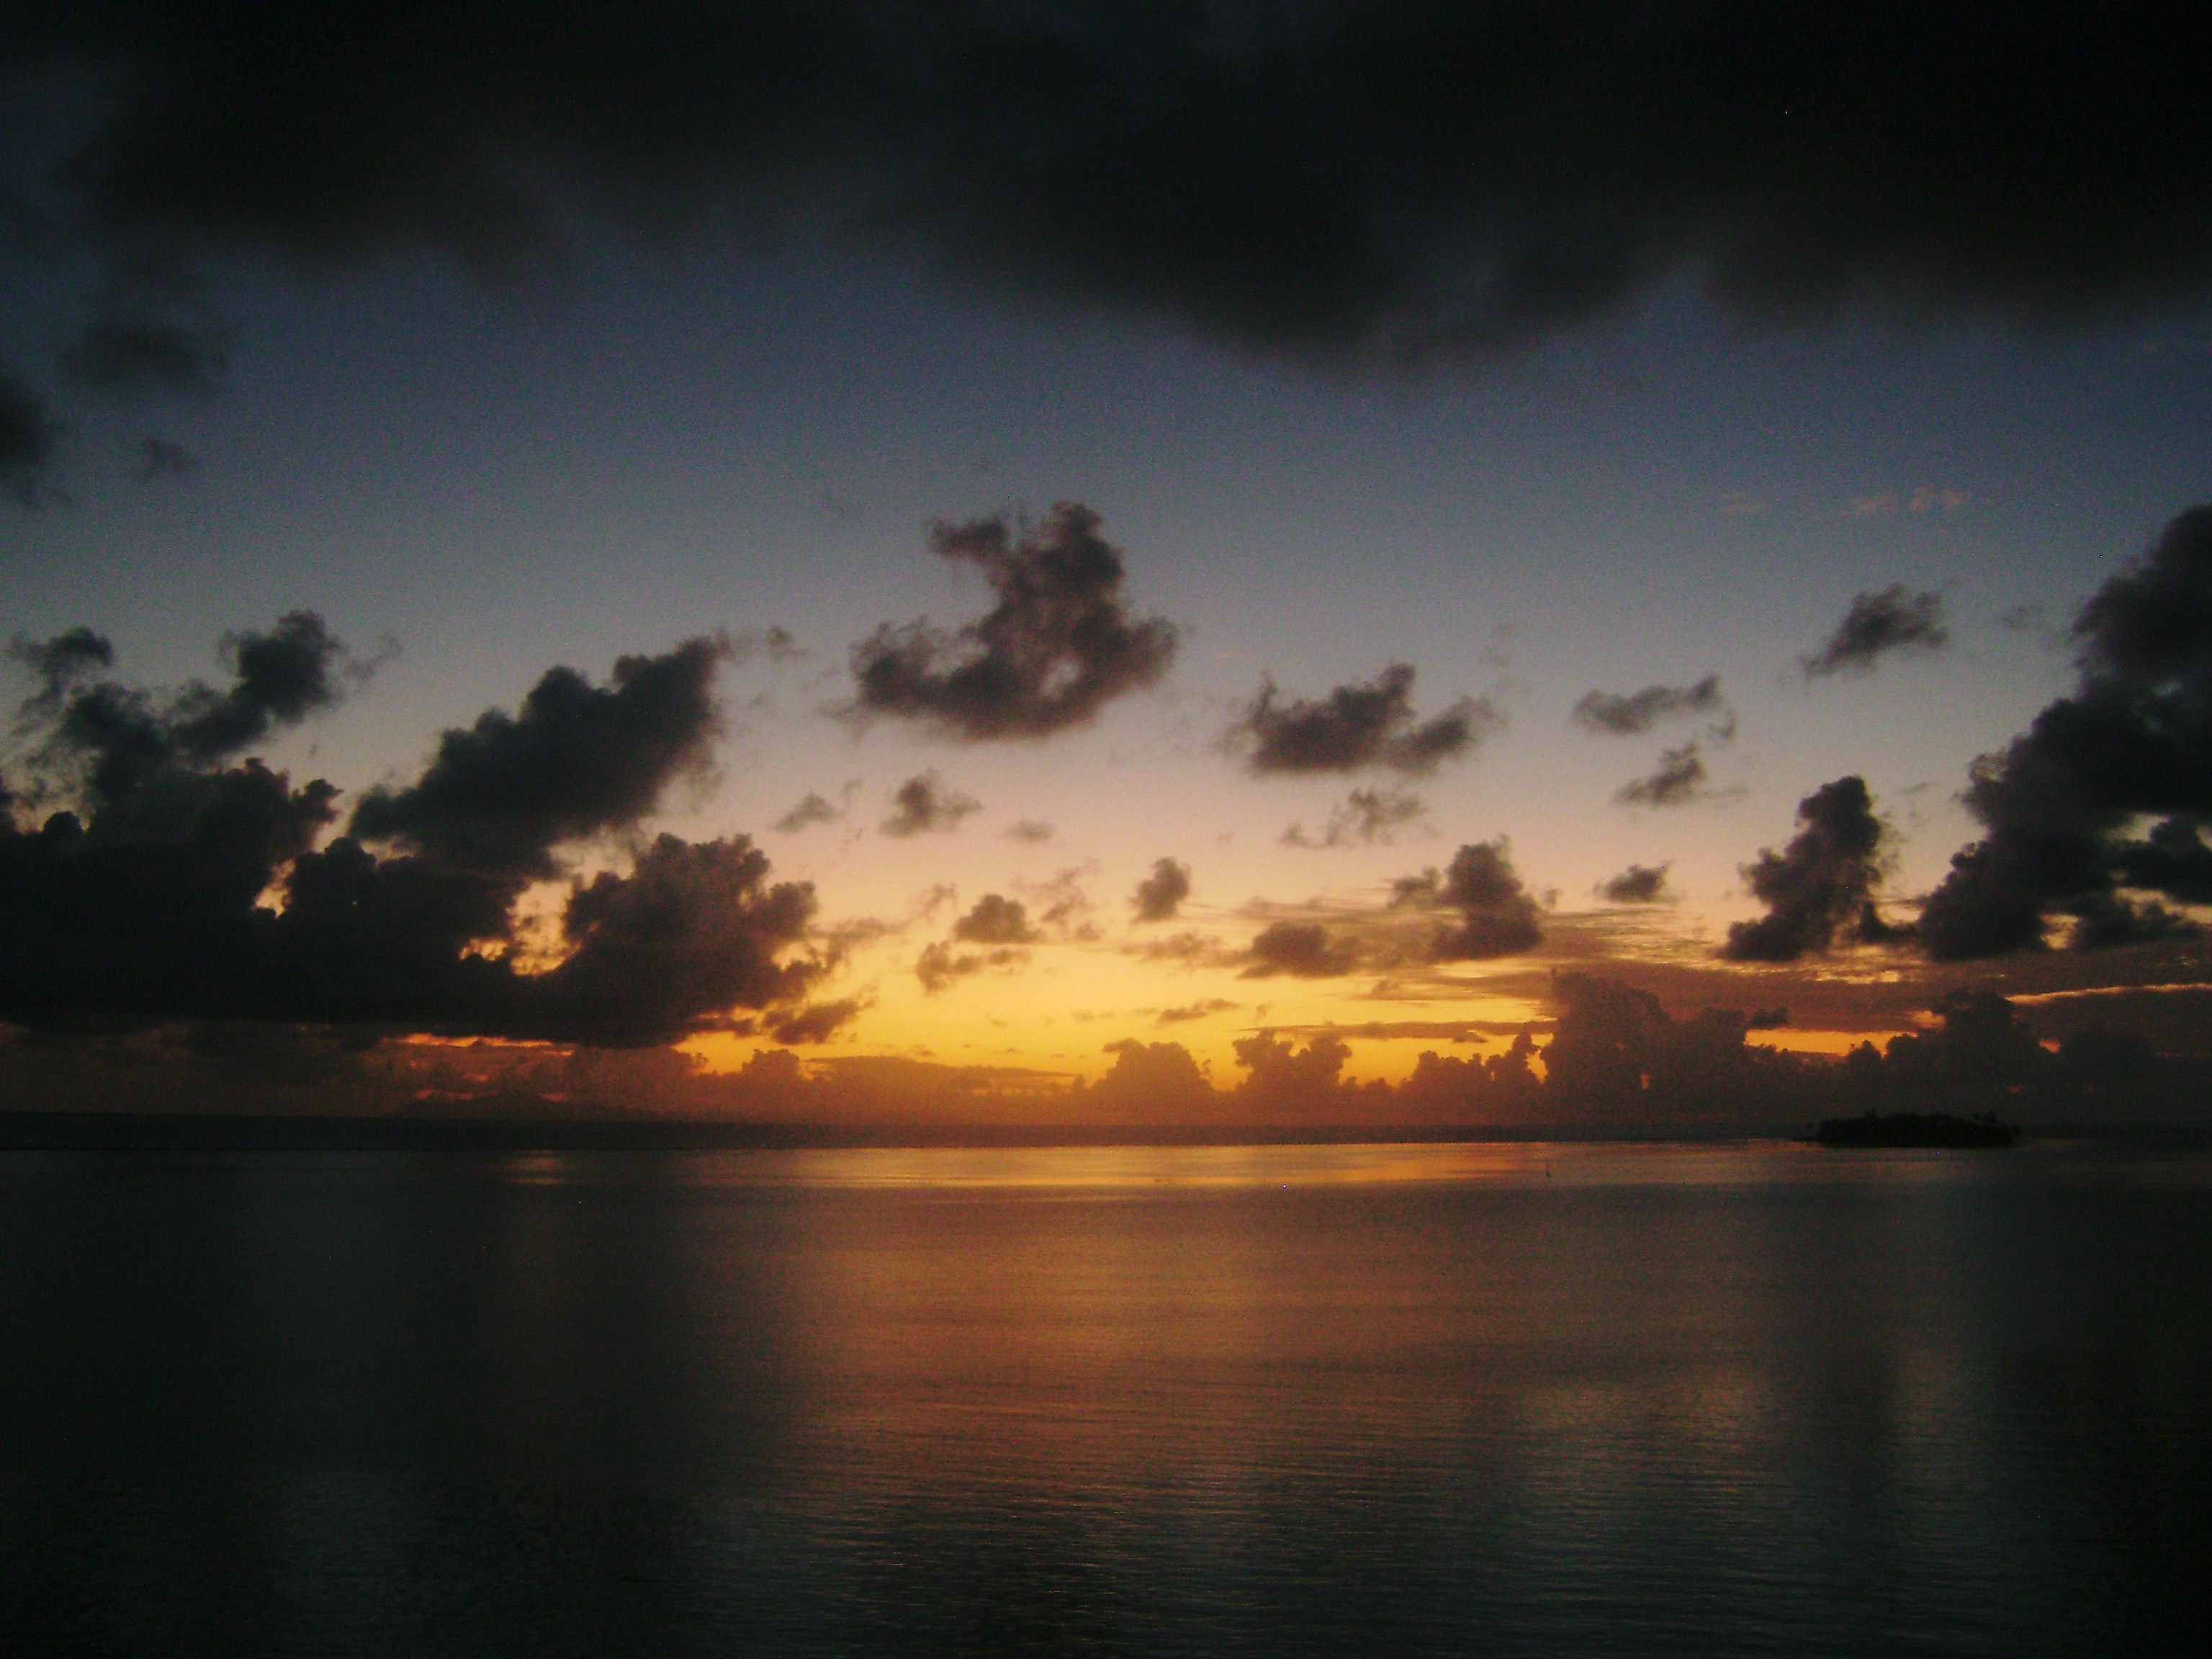 Papeete awakens…the sea is like glass…I could not wait for the first sign of dawn breaking…it's like poetry in motion.